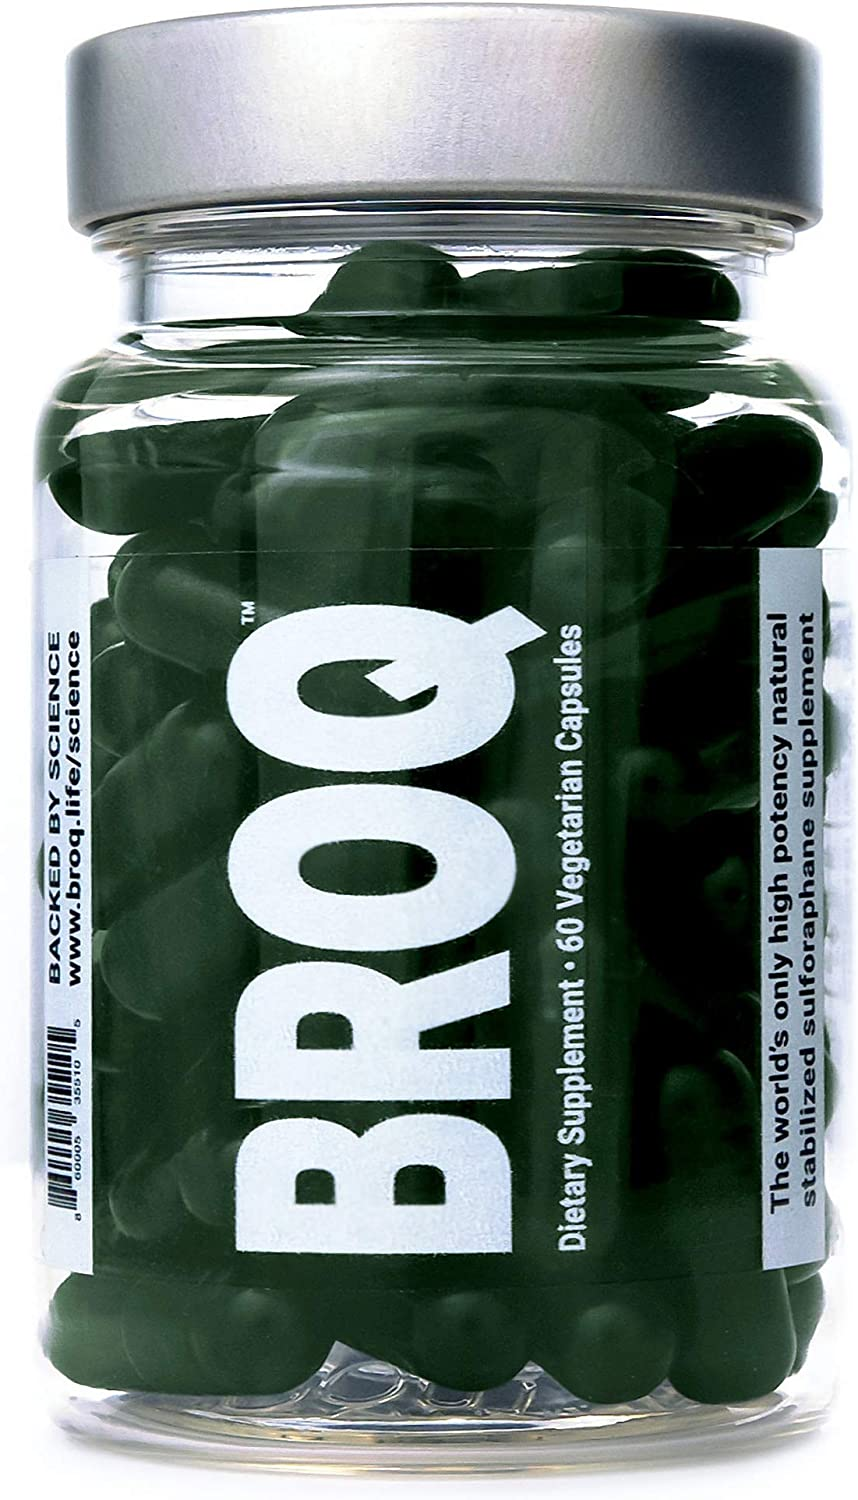 BROQ - The Gold Standard of Sulforaphane Supplements - More Than 2X Any Other Product - See Independent Lab Tests - The World's Only High Potency Natural Stabilized Sulforaphane - Just Launched in US